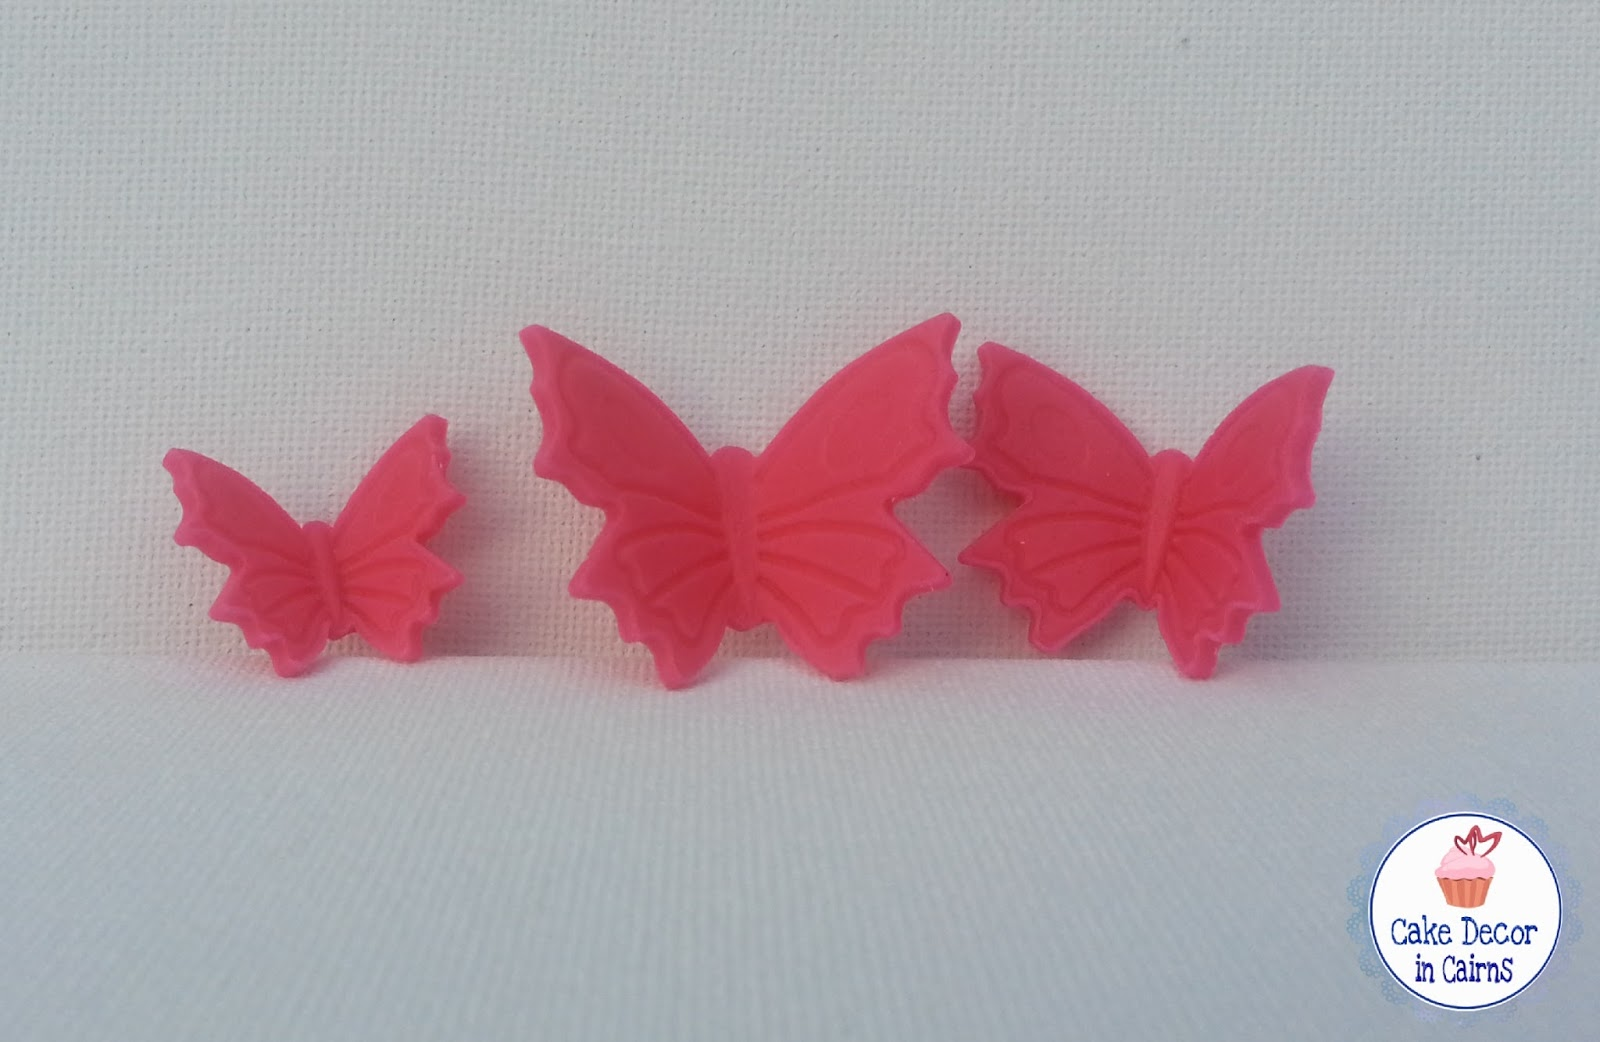 Dried and formed Pink fondant gumpaste butterflies